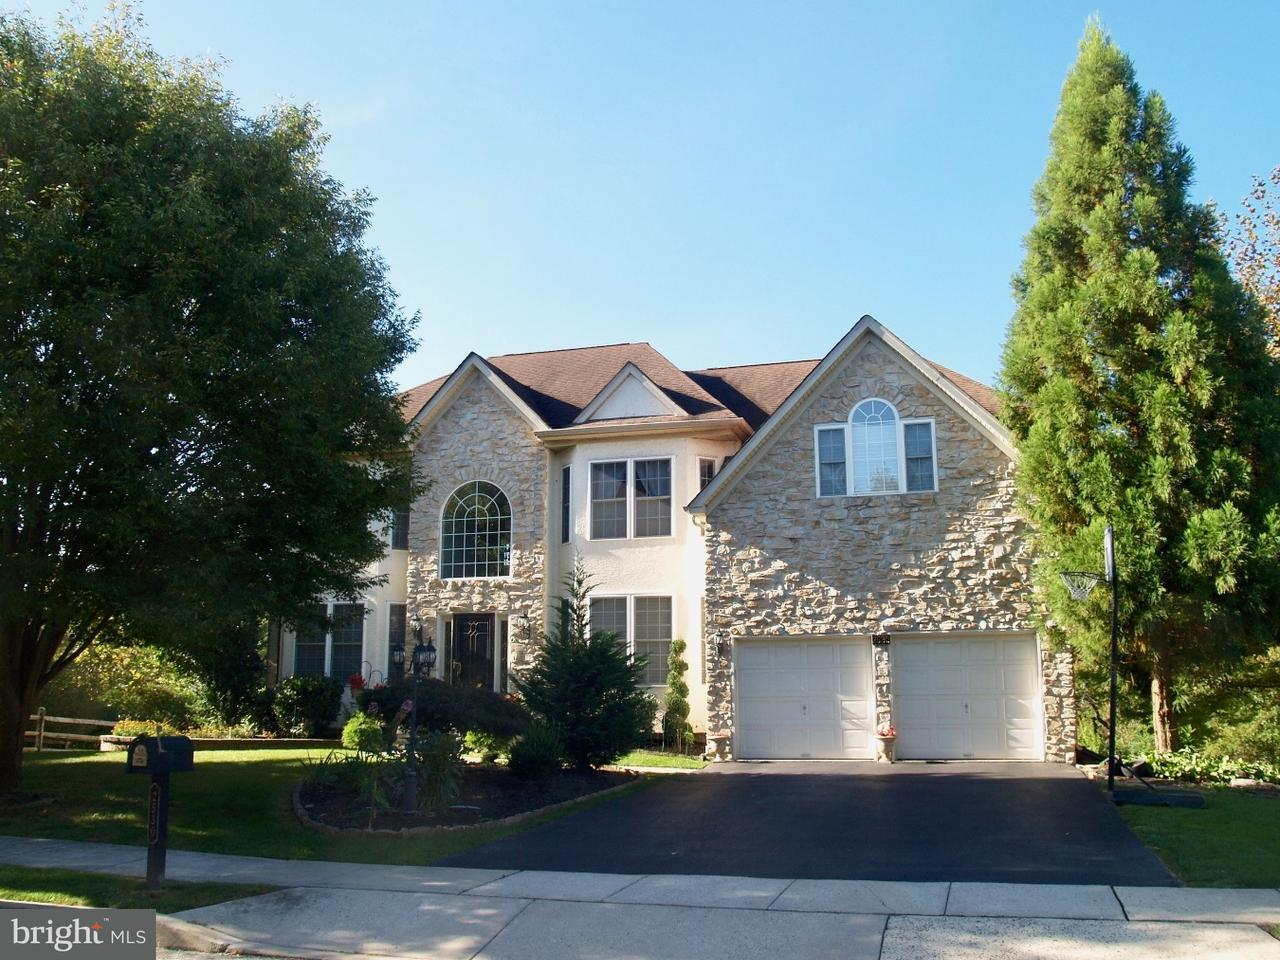 Single Family Home for Sale at 2530 QUAIL RUN Lansdale, Pennsylvania 19446 United States